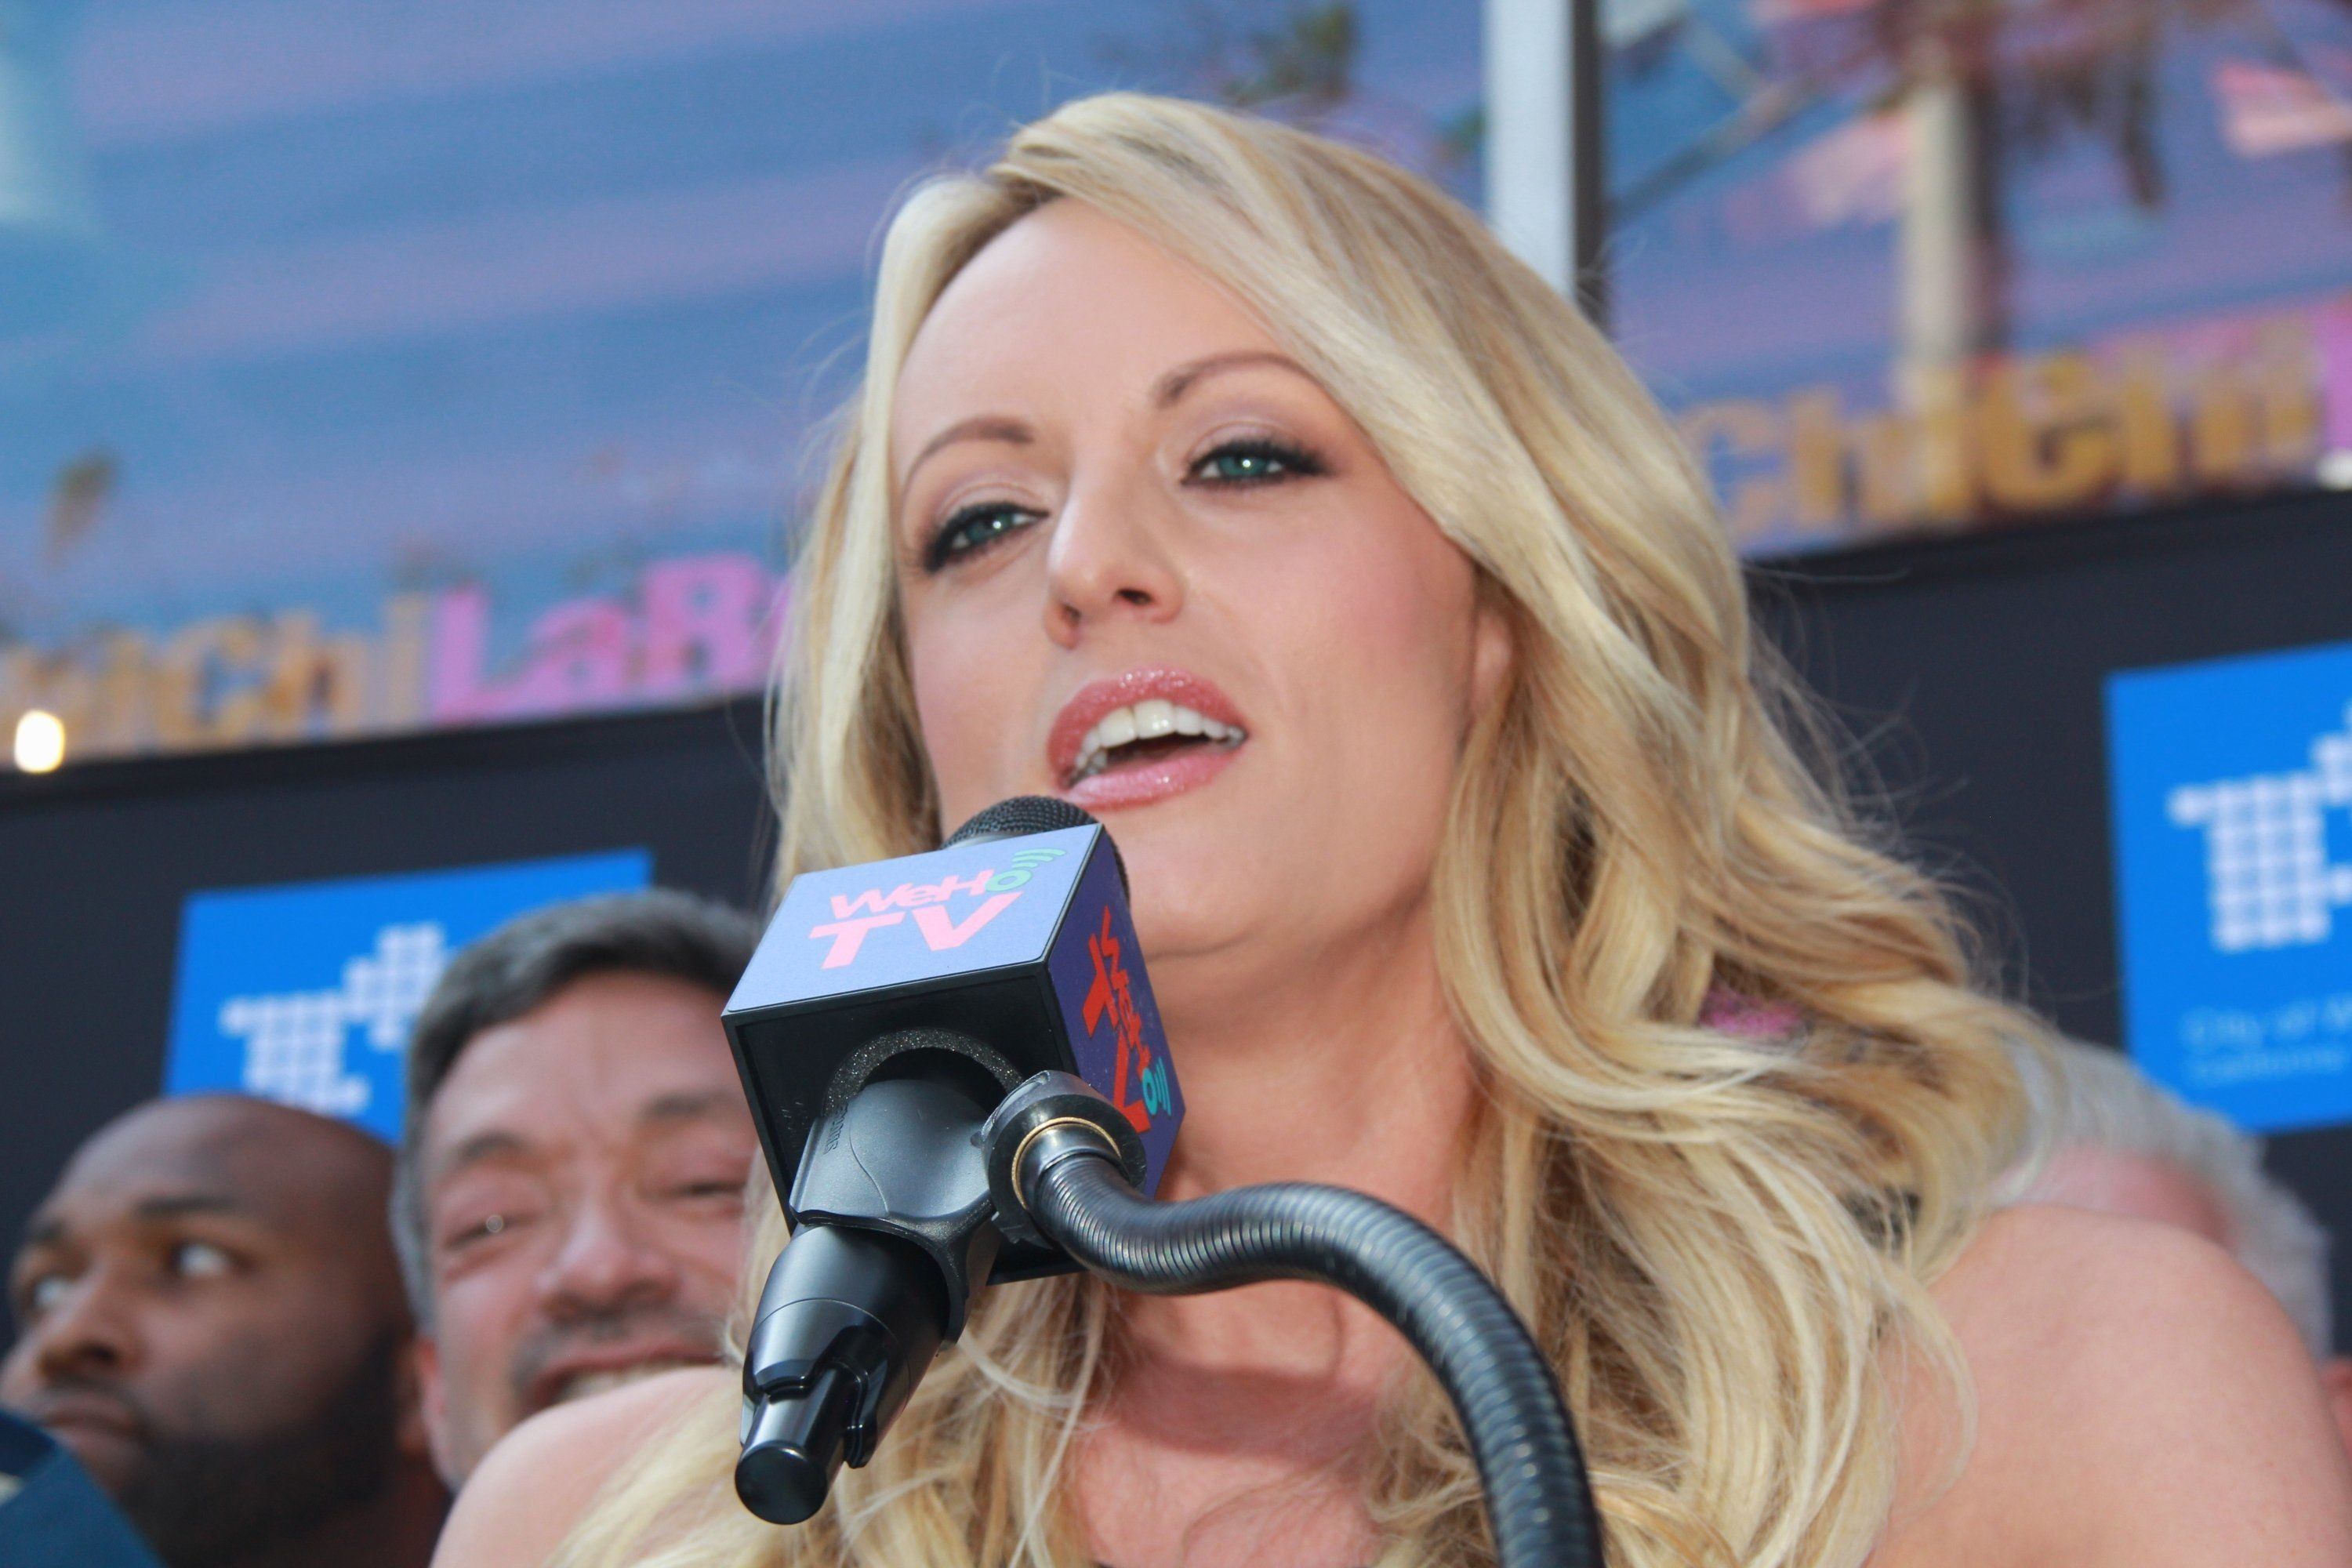 Stormy Daniels: Intimate Details Shared About Donald Trump 'Prove' She Told